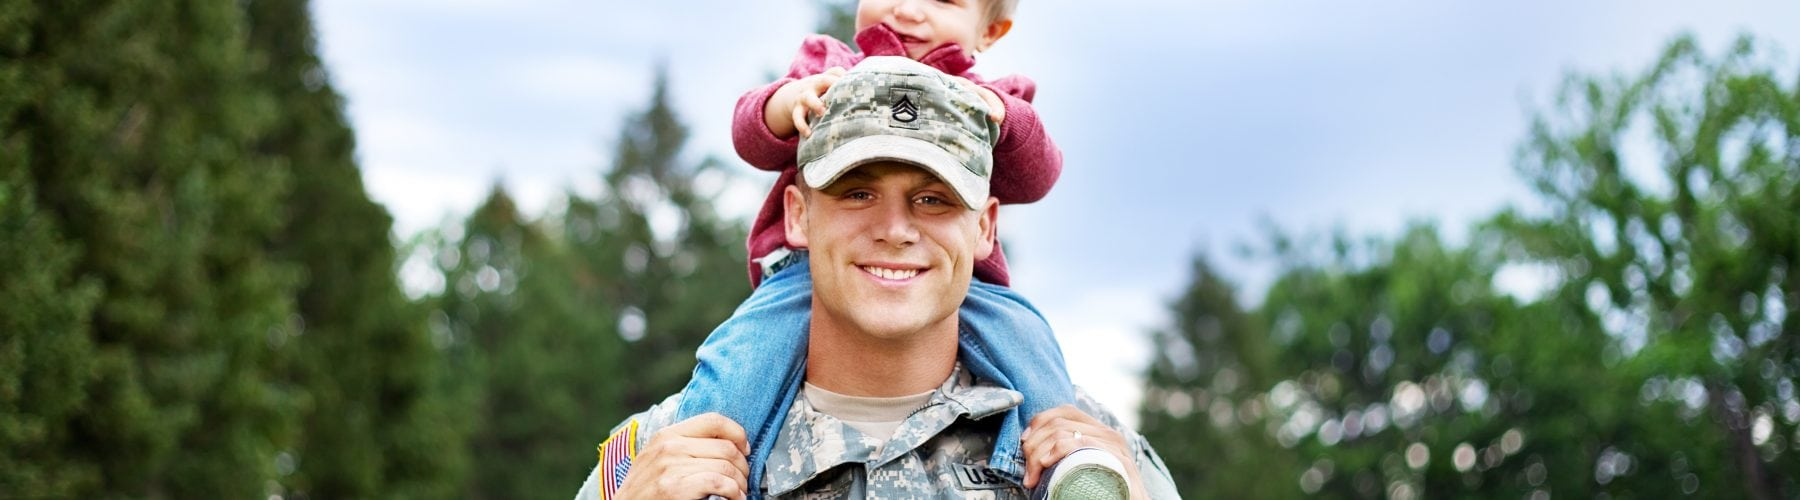 Dad in uniform giving his child a piggy-back ride